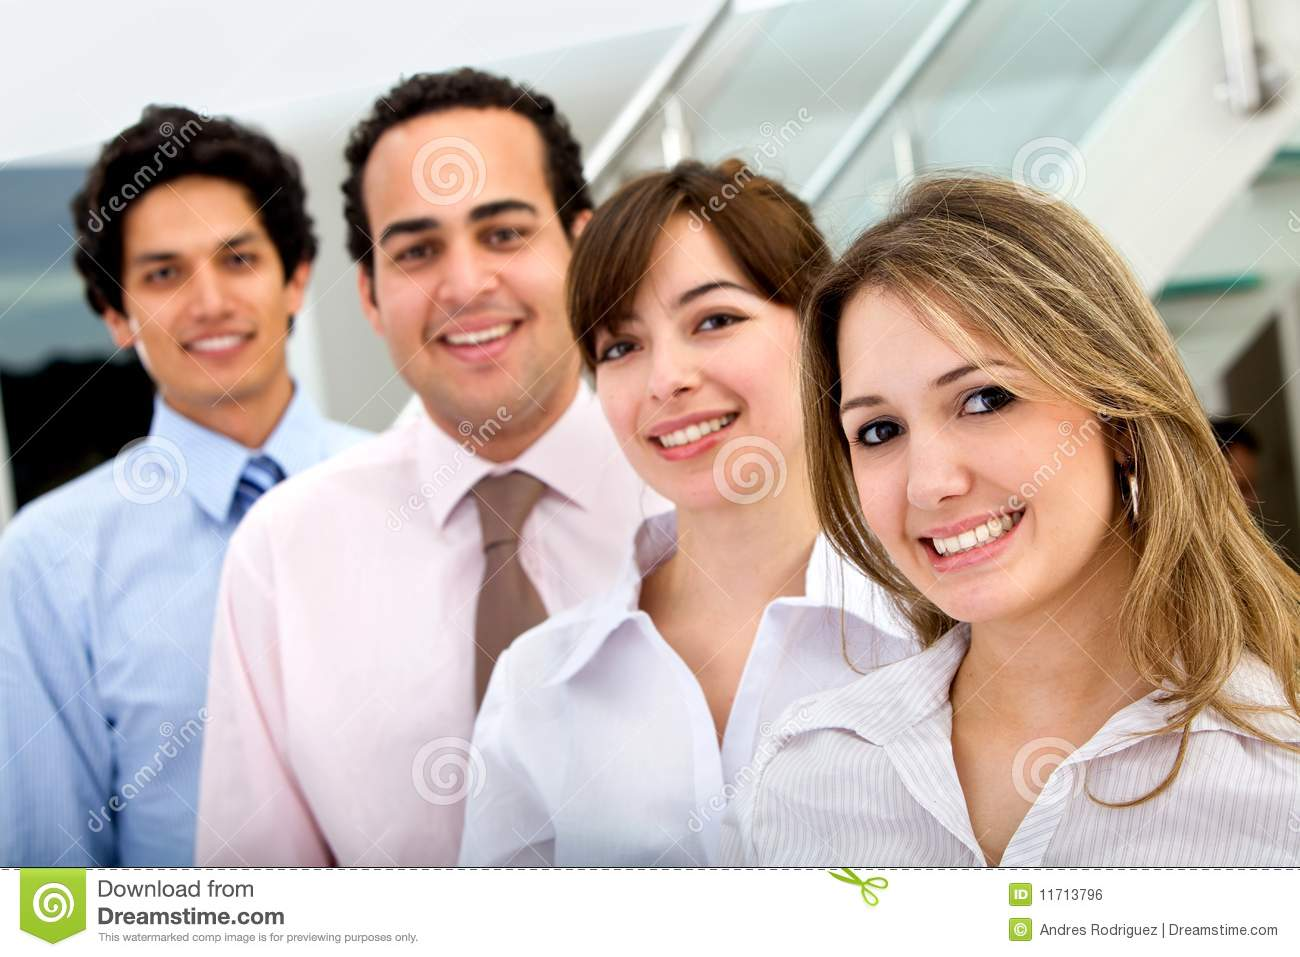 Business people smiling stock photo. Image of happy ...